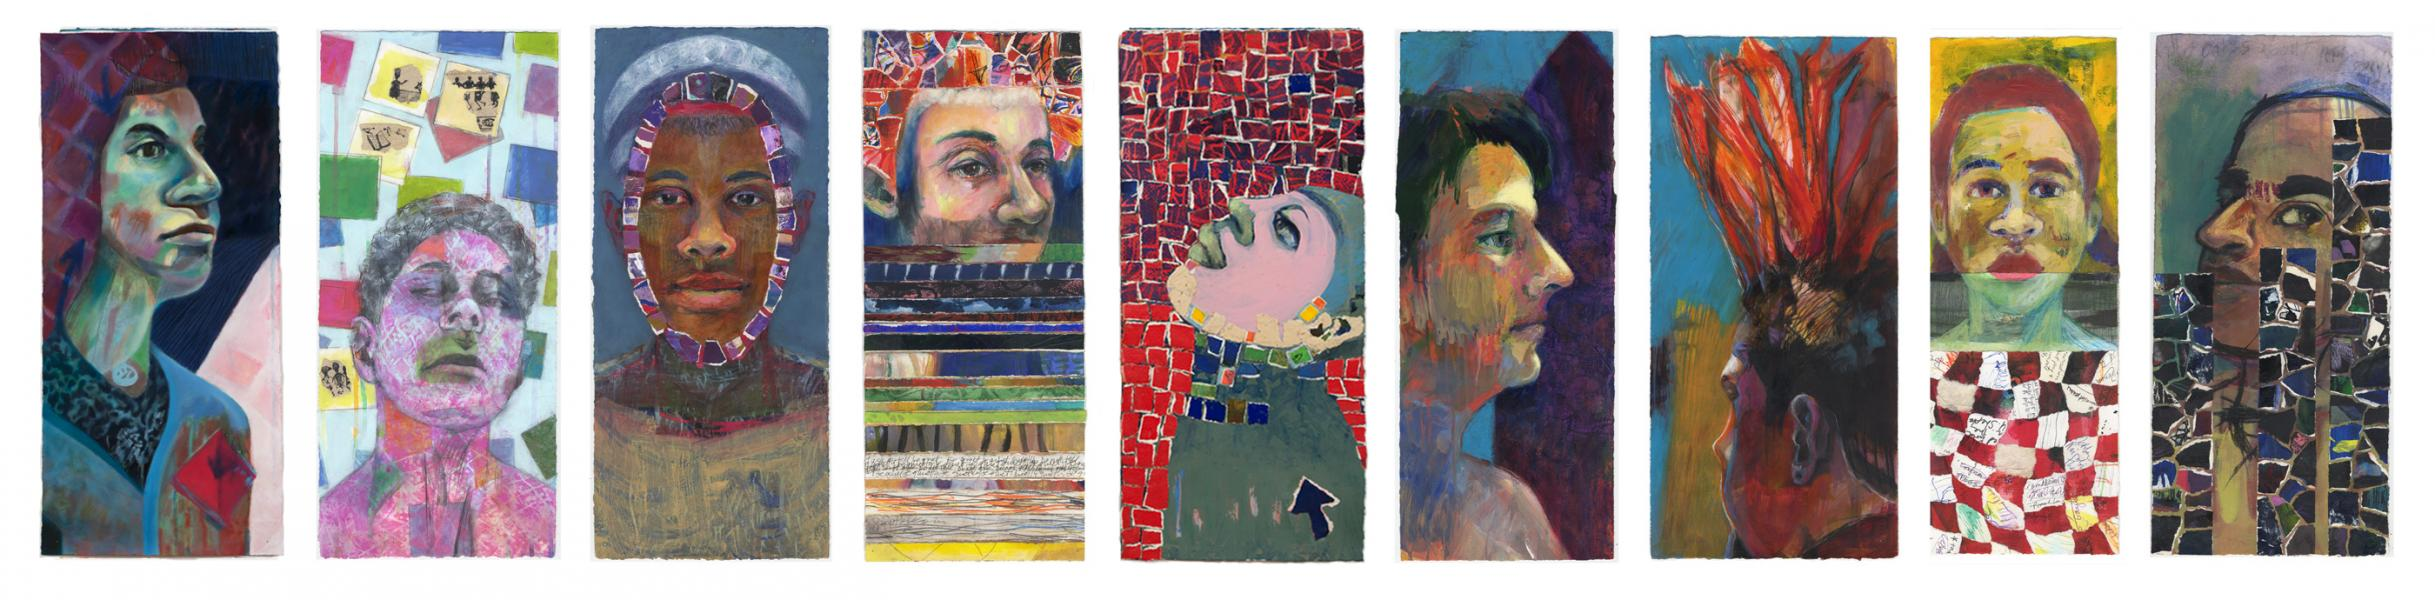 portraits spark conversations, mixed media portraits, real people, paintings, conversations create portraits